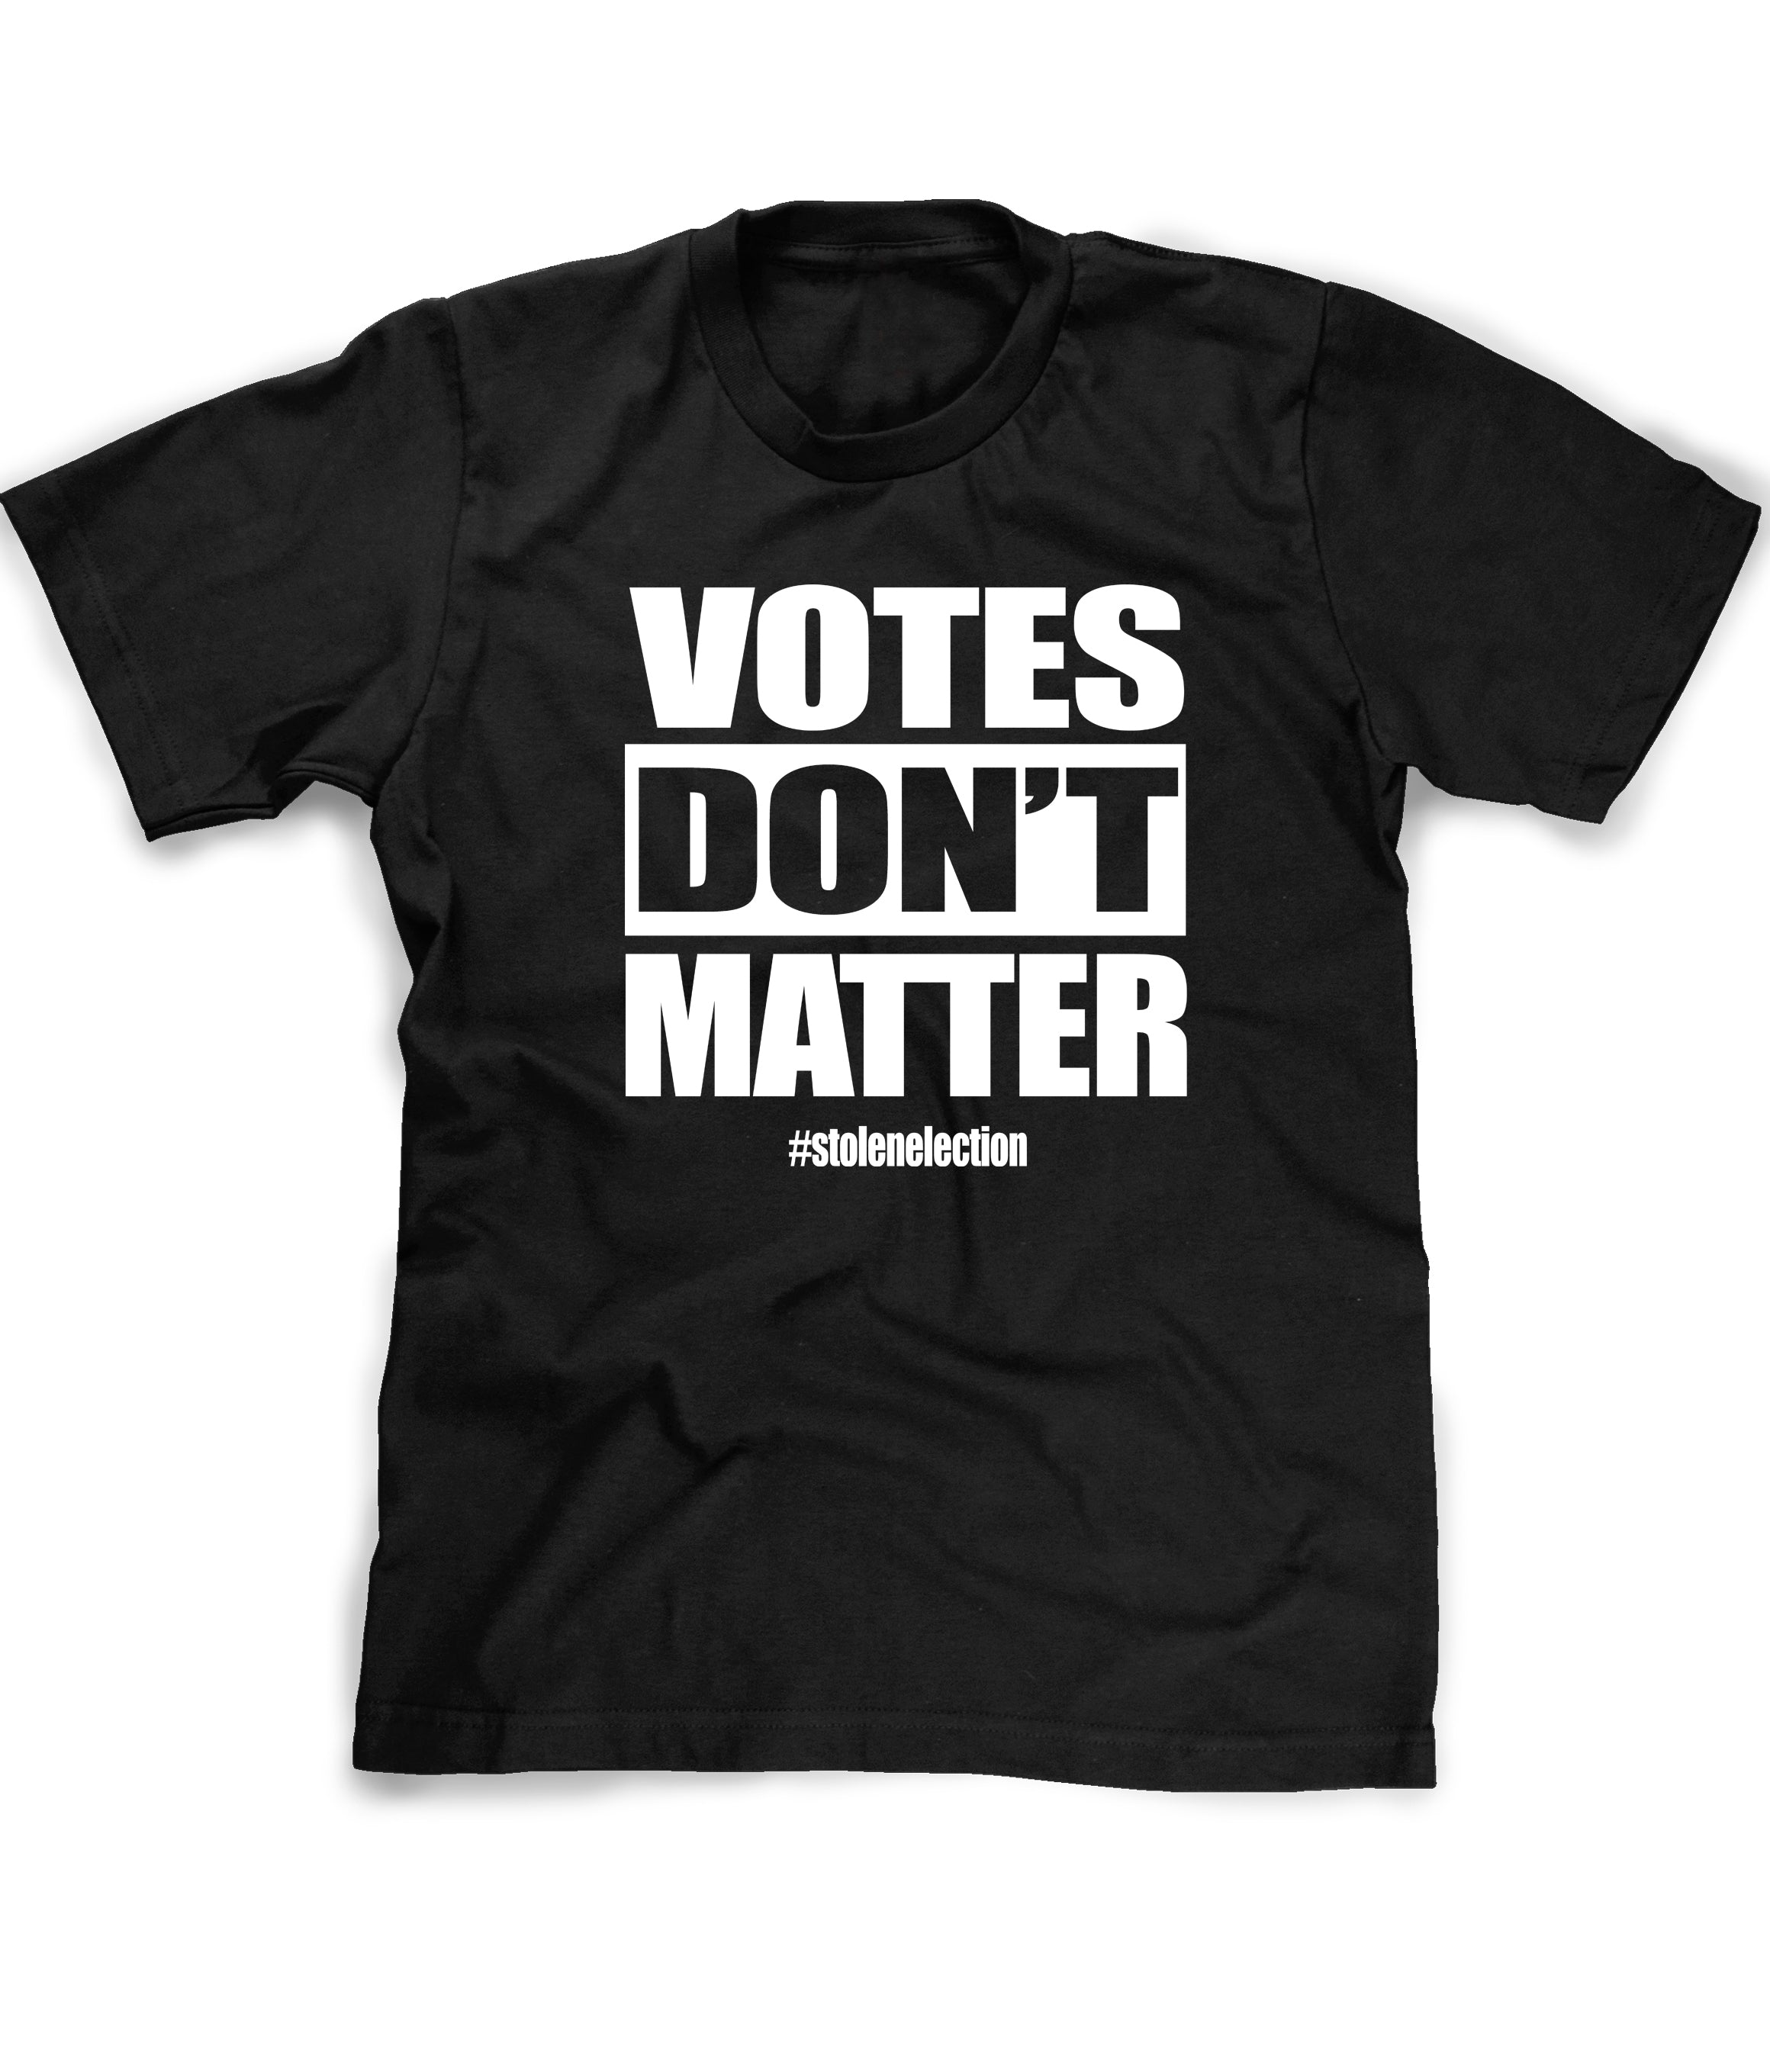 Votes Dont Matter election fraud tee shirt